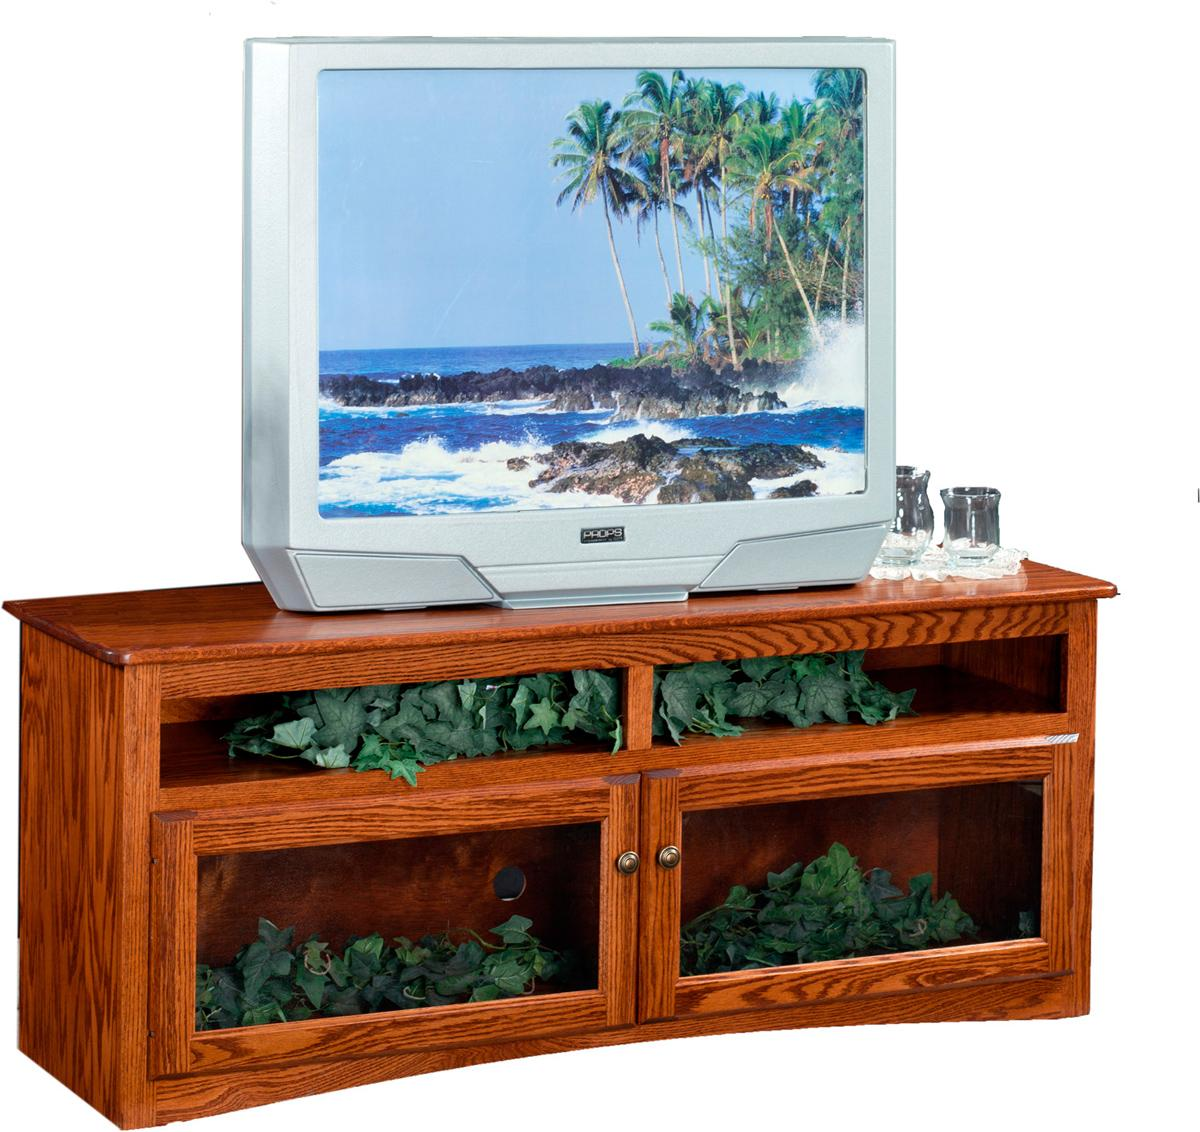 Economy TV Stand - low and wide